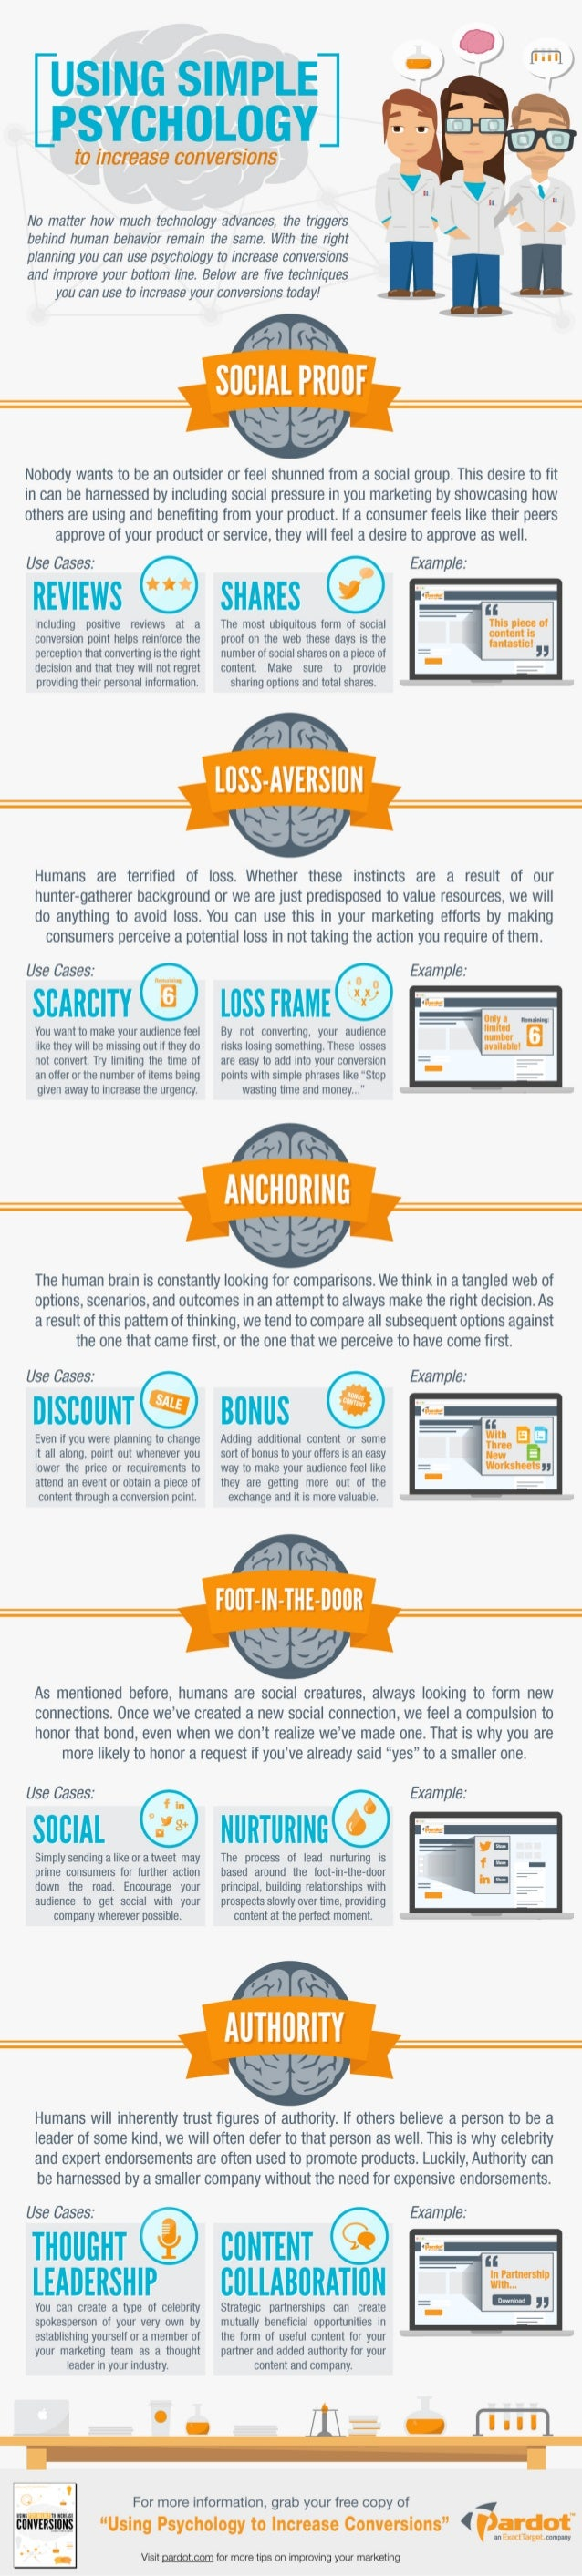 Using Simple Psychology to Increase Conversions [Infographic]